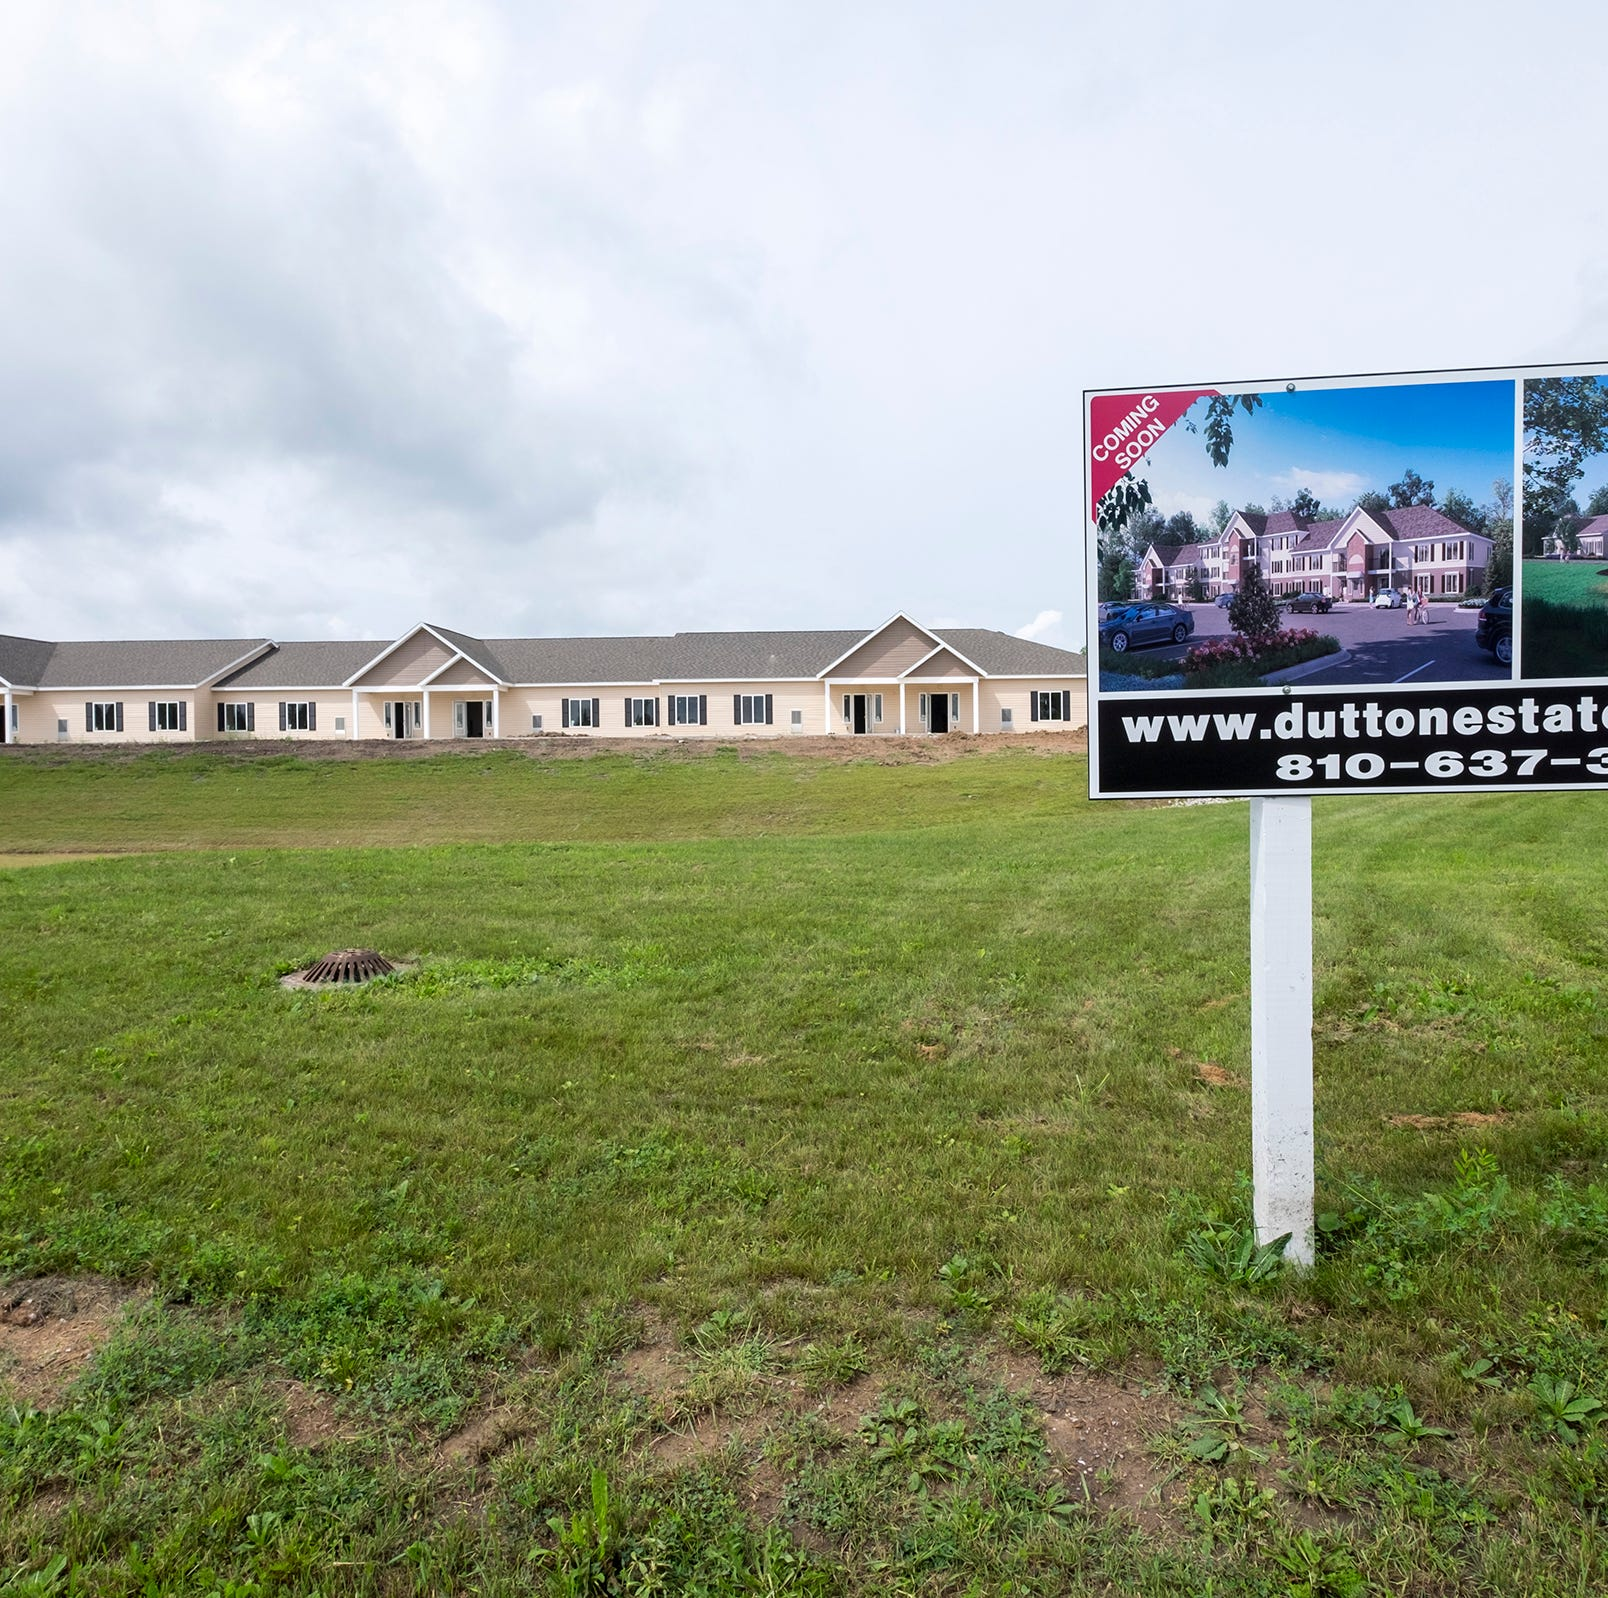 Apartment complex taking shape in St. Clair Twp.